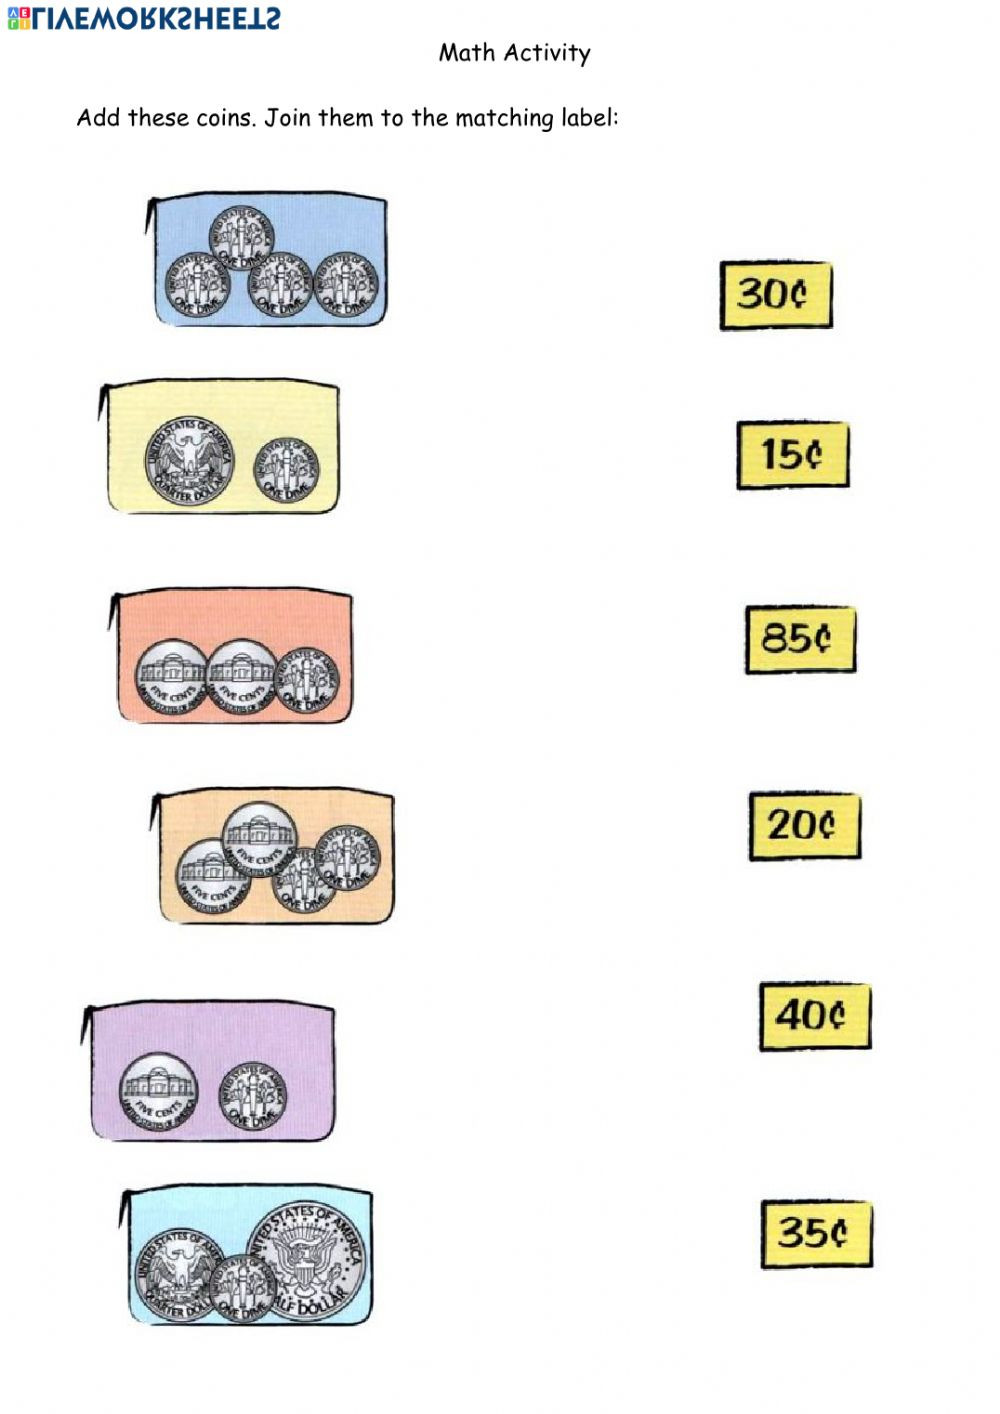 Shopping Math Worksheet Math Shopping Using Coins 2 April 14 Interactive Worksheet